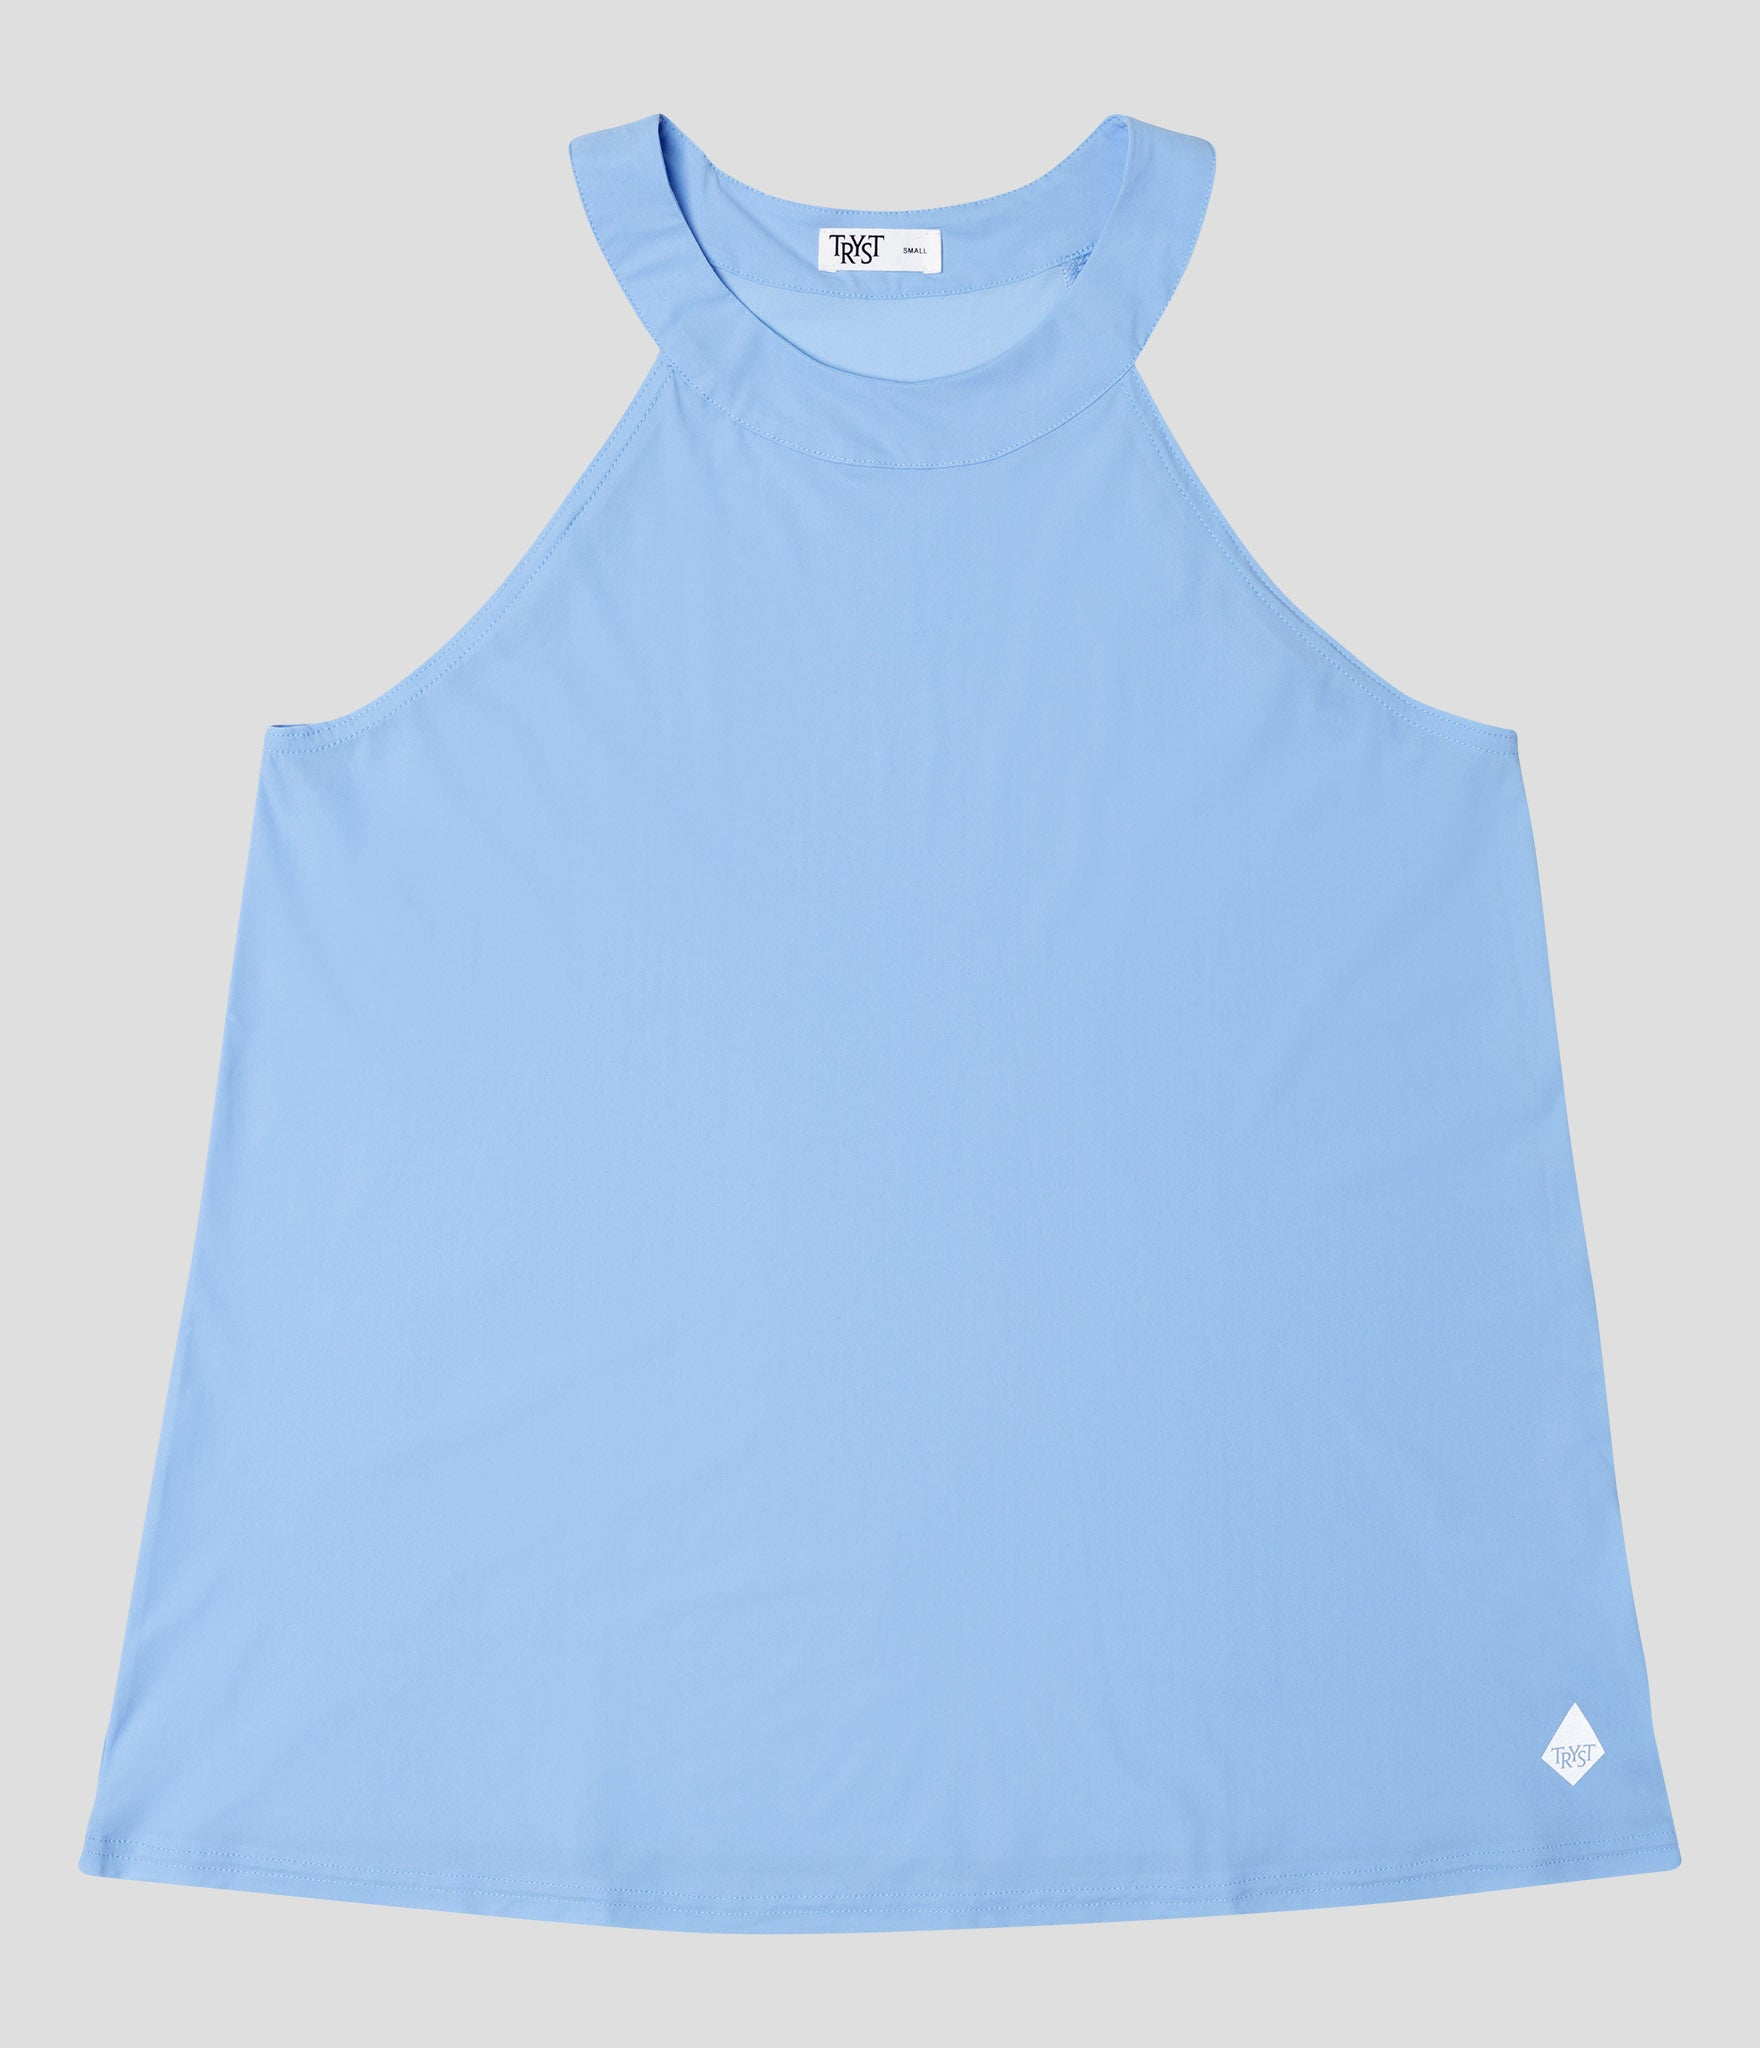 Newport Top</br>Light blue